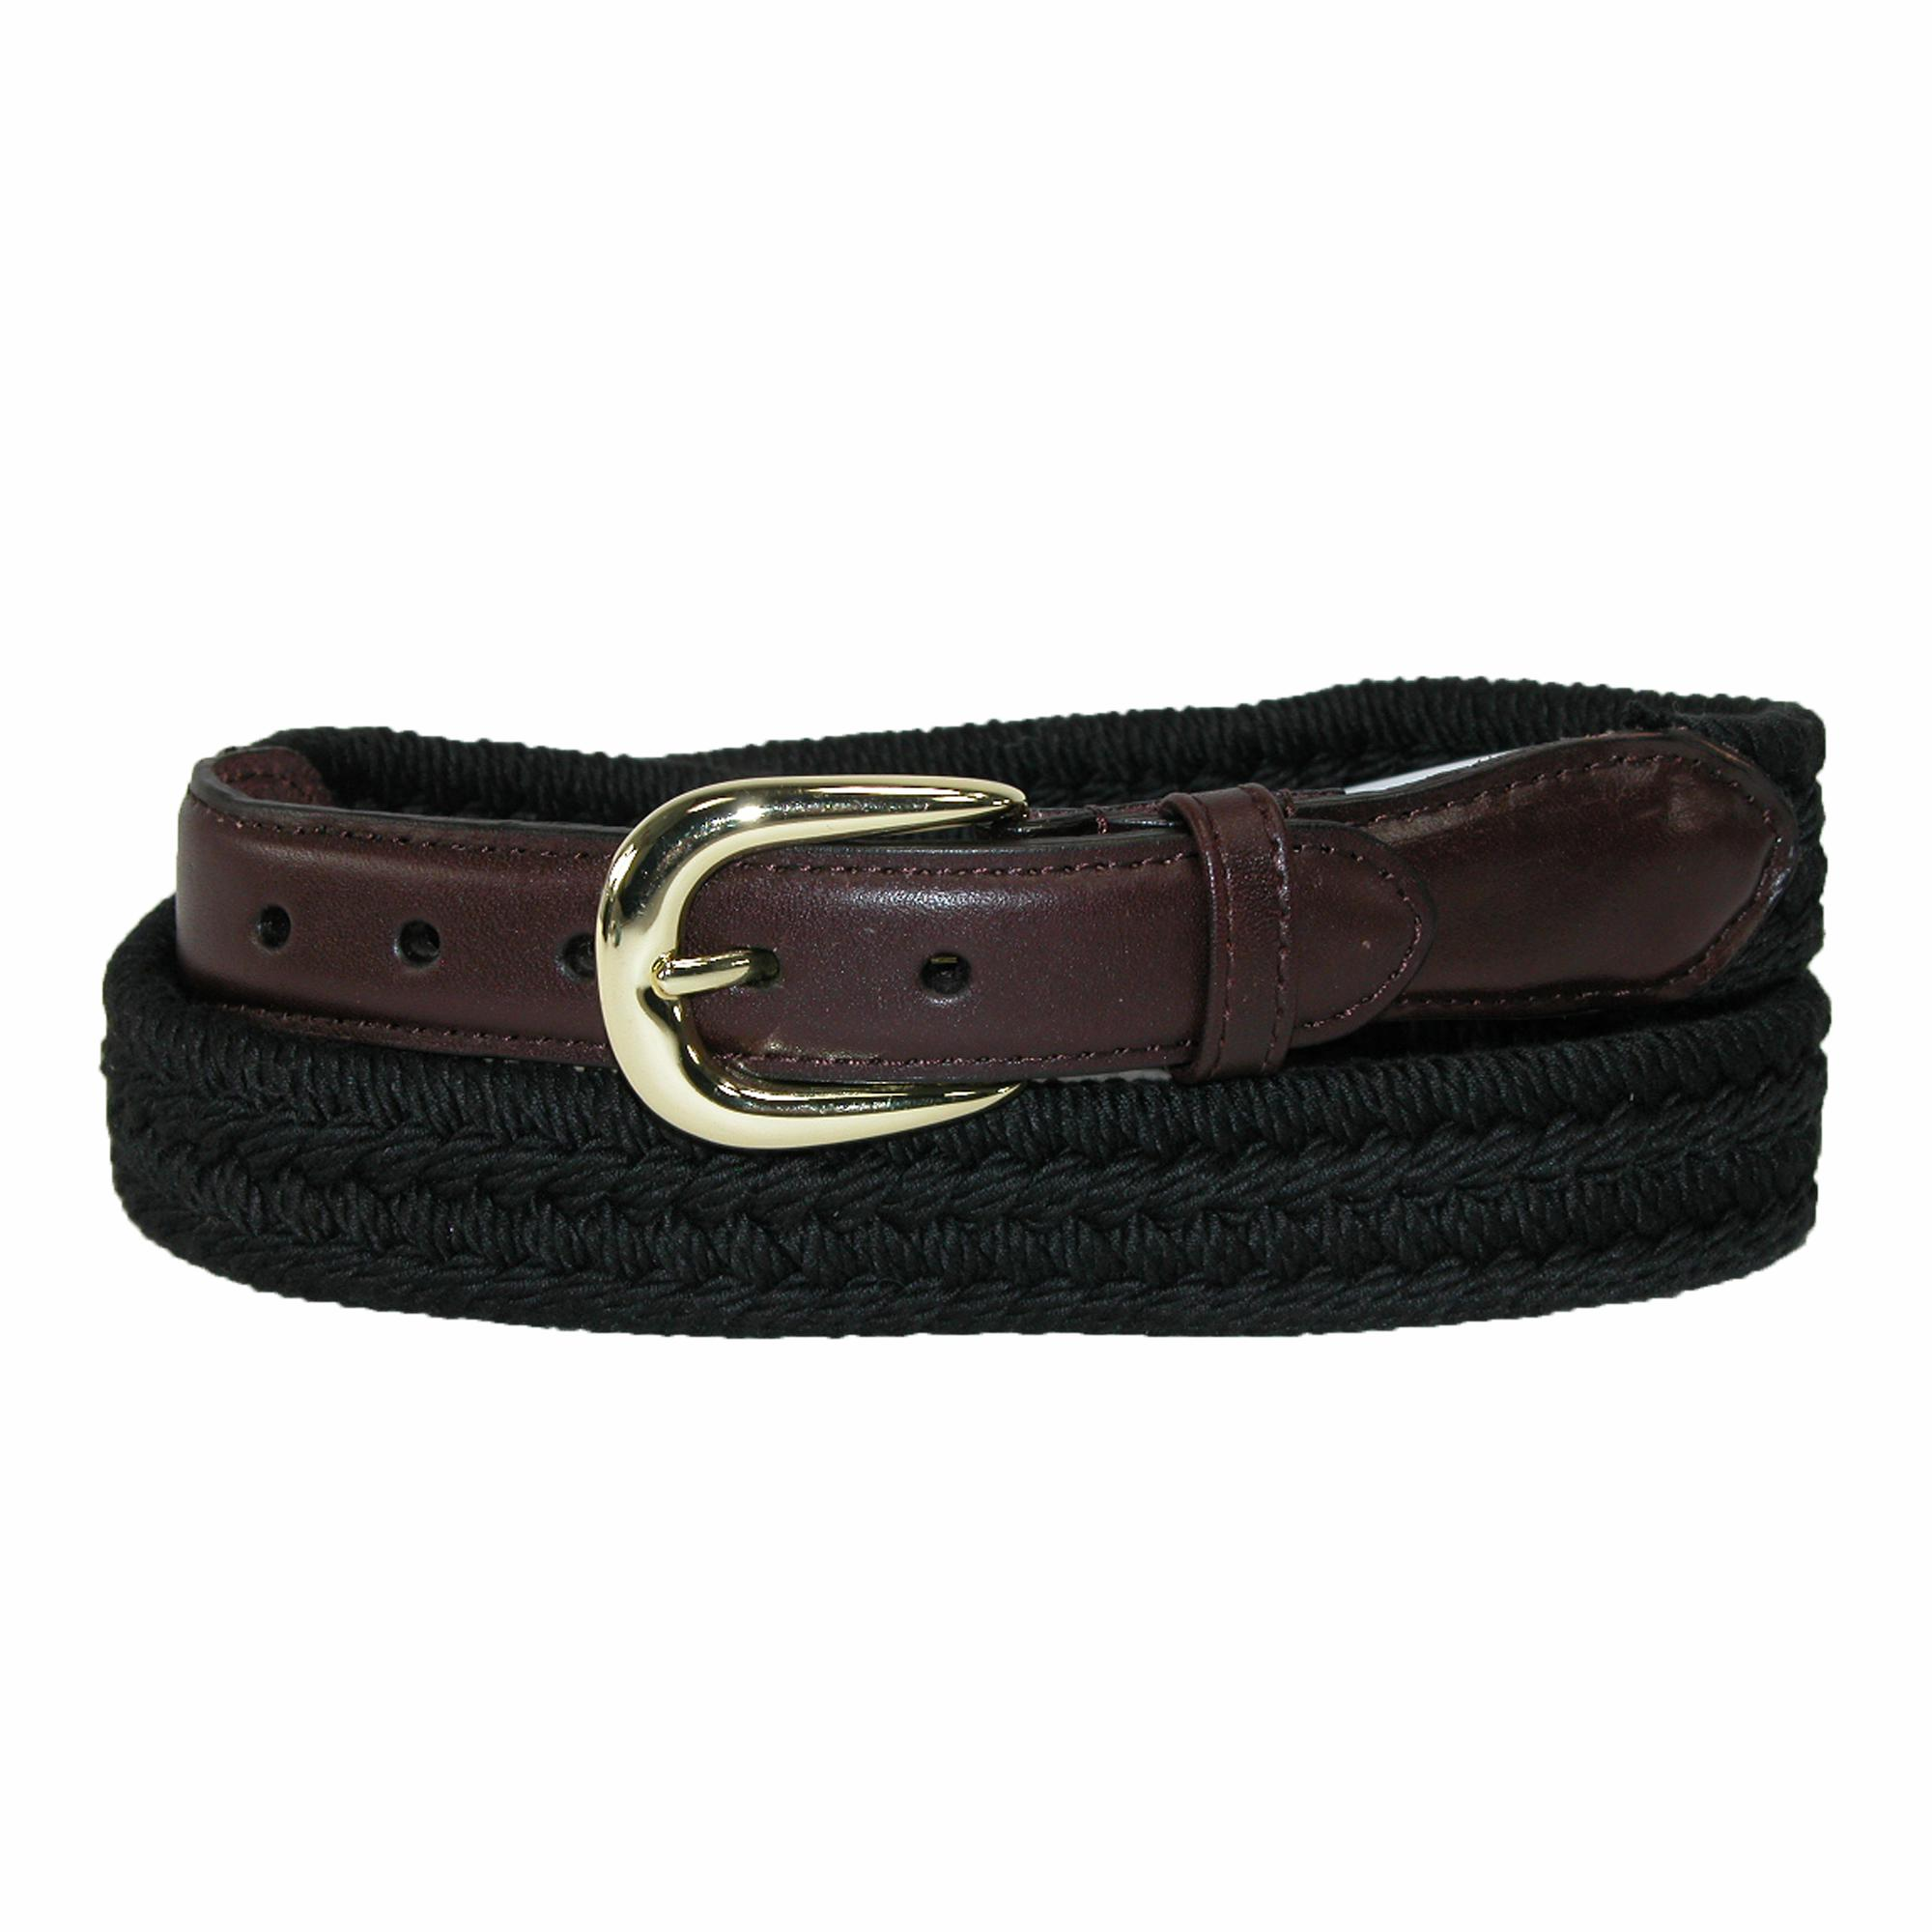 Rogers-whitley Mens Cotton With Leather Trim Braided Belt